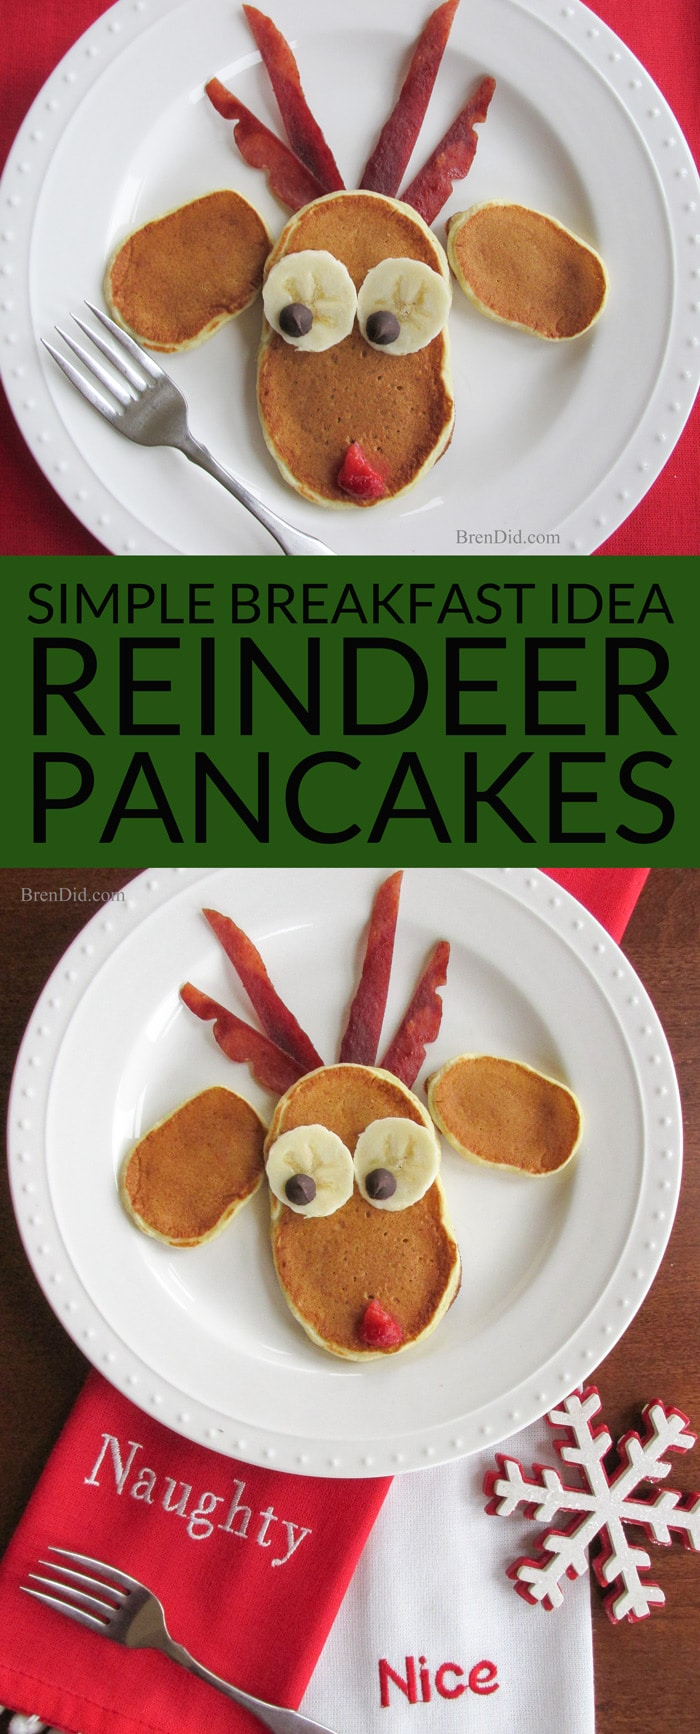 how to make simple pancakes recipe